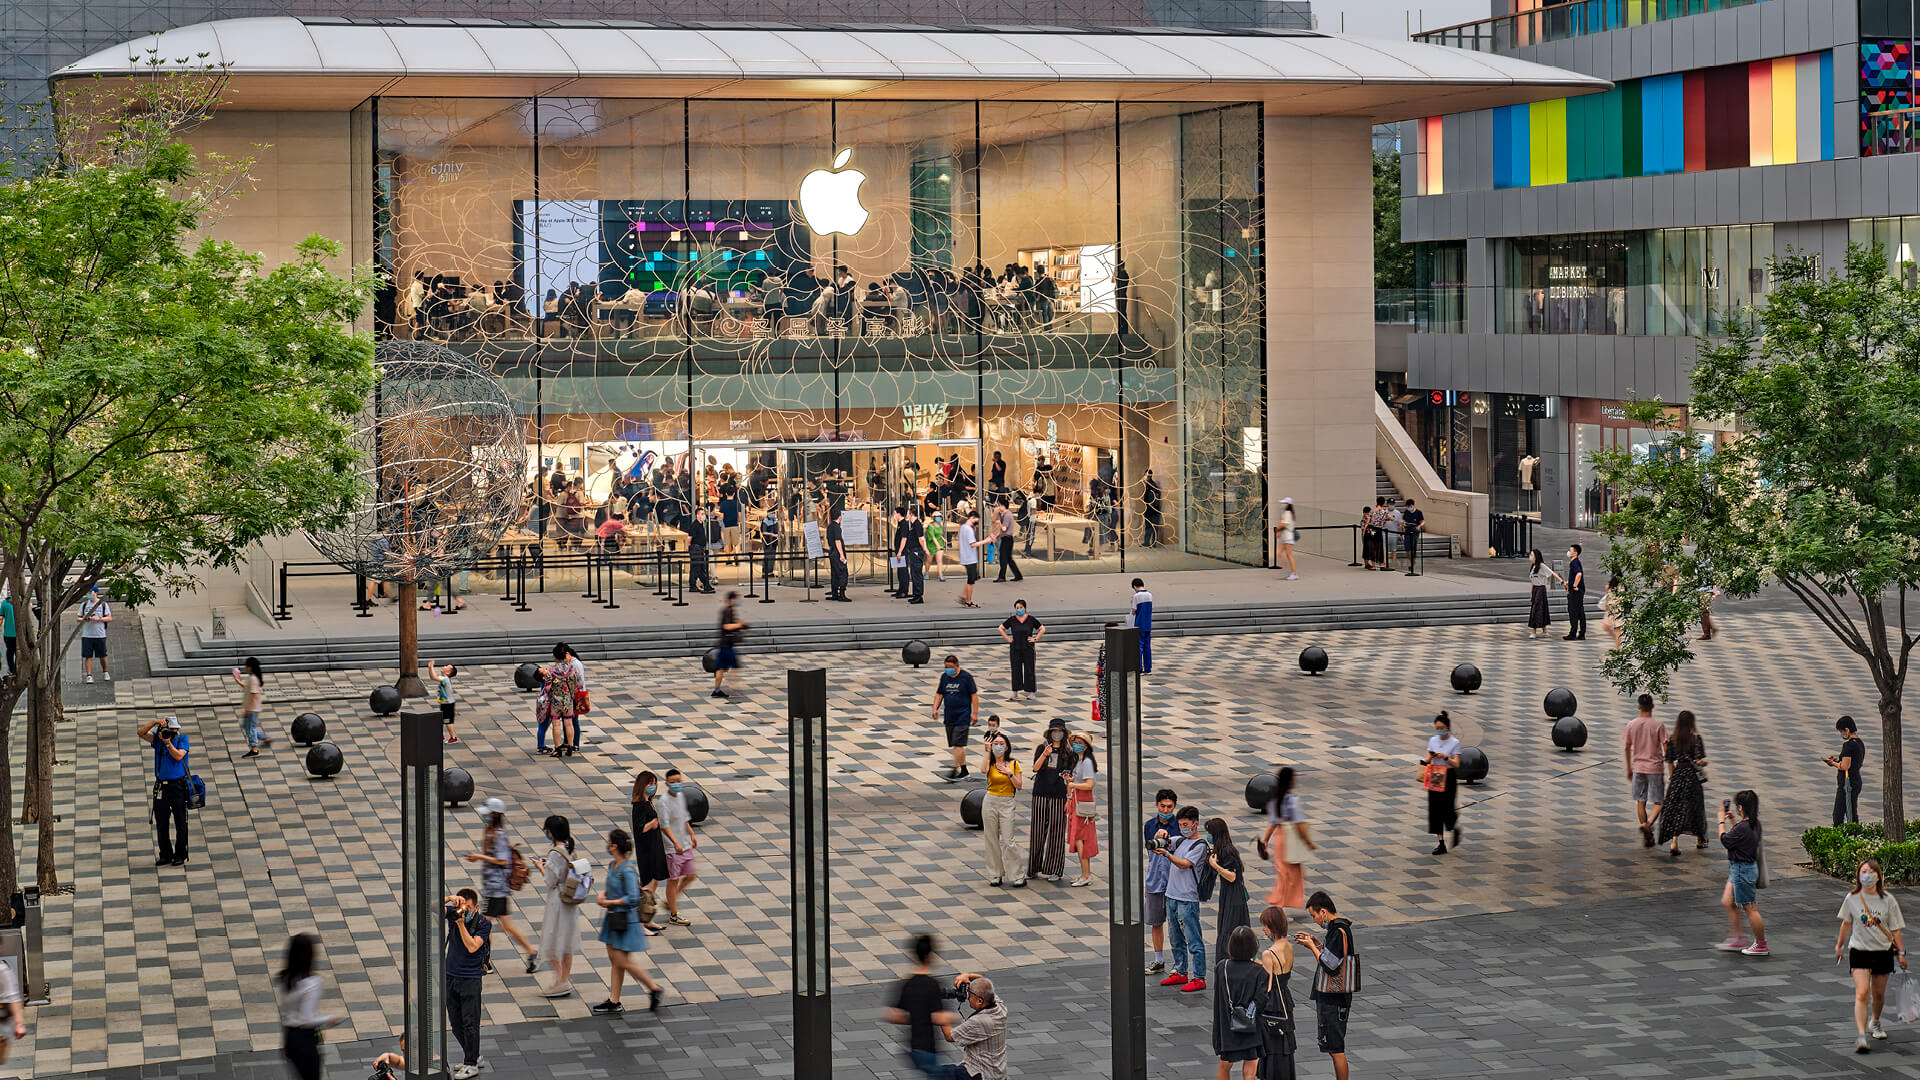 The new Apple store in Sanlitun, Beijing by Foster + Partners | Apple Store in Beijing by Fosters + Partners| STIRworld